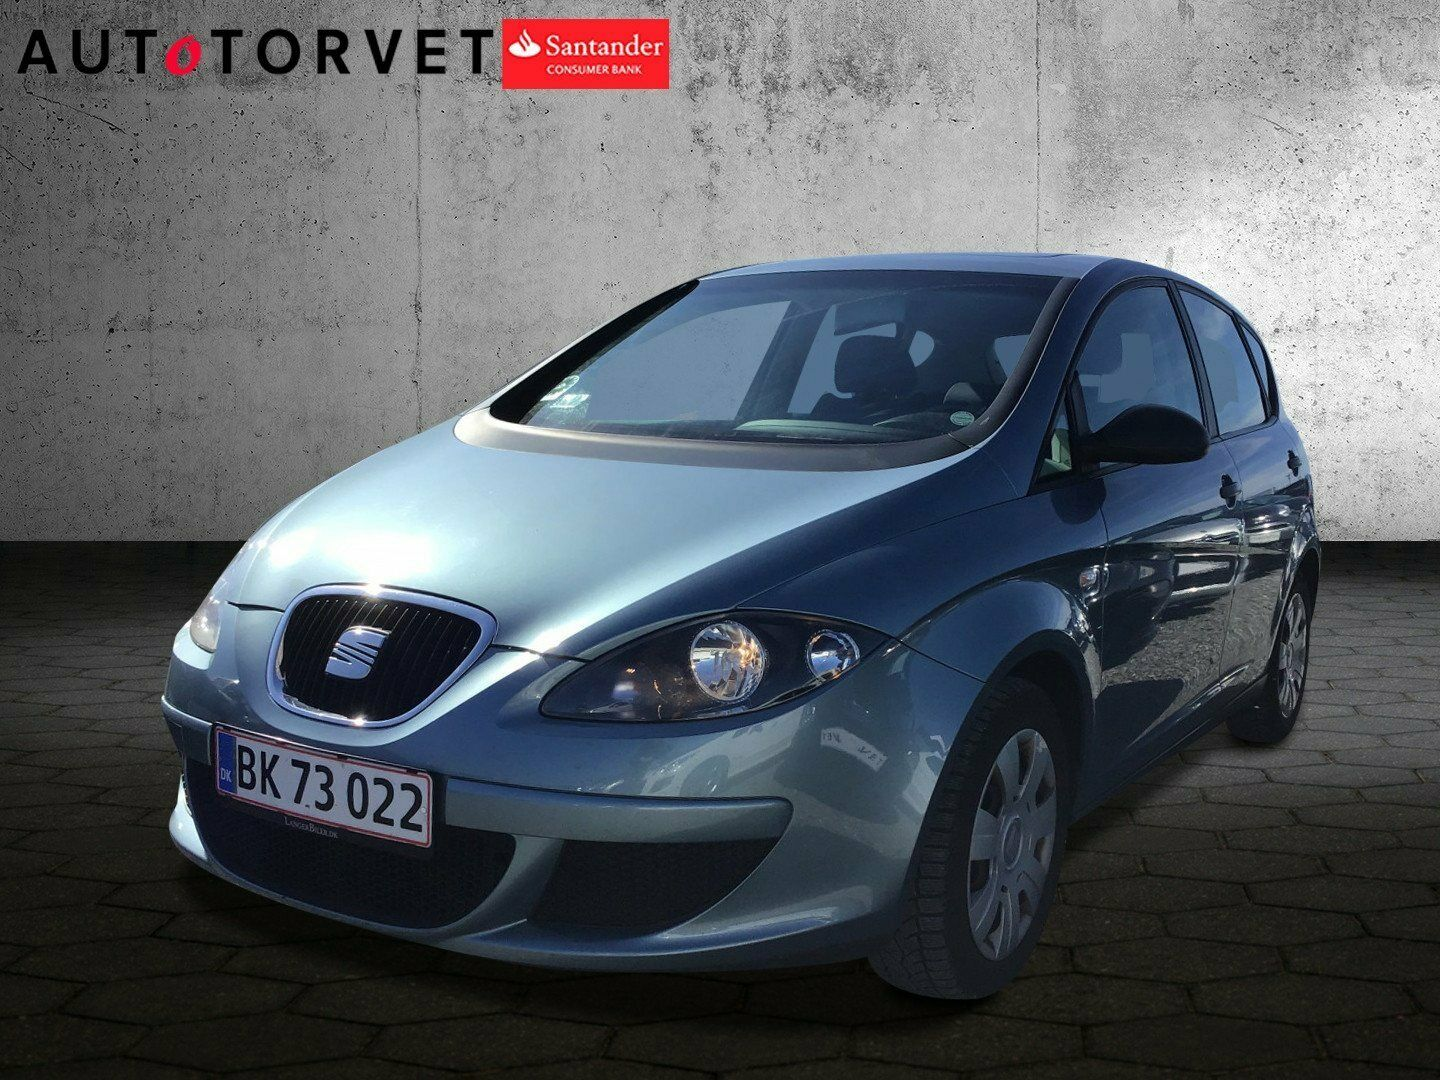 Seat Altea 1,6 Reference 5d - 46.700 kr.